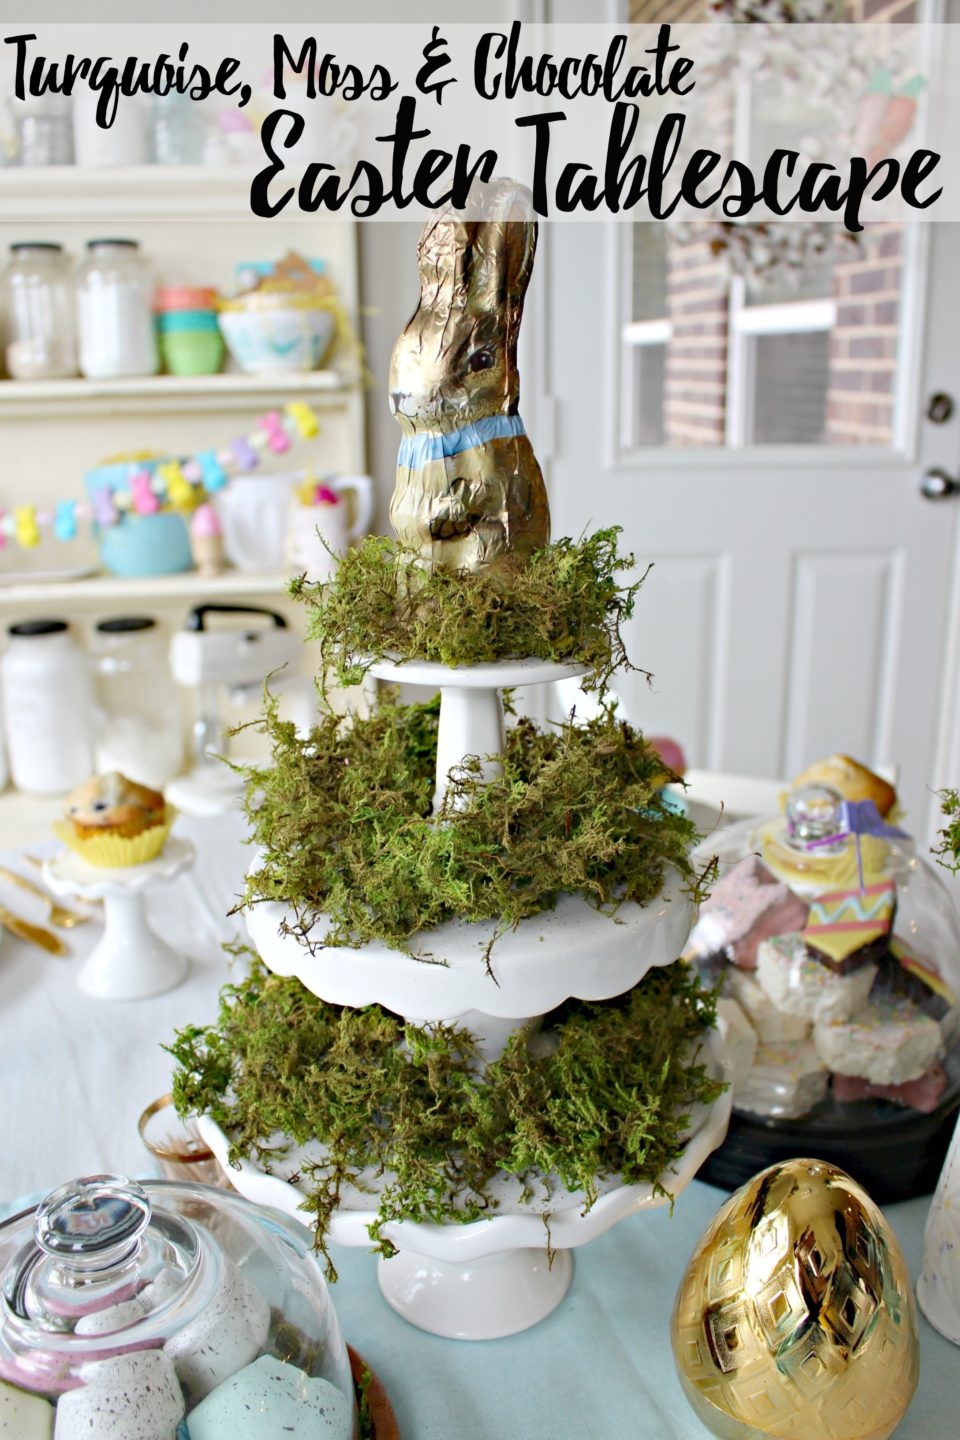 A Turquoise, Moss & Chocolate Easter Tablescape